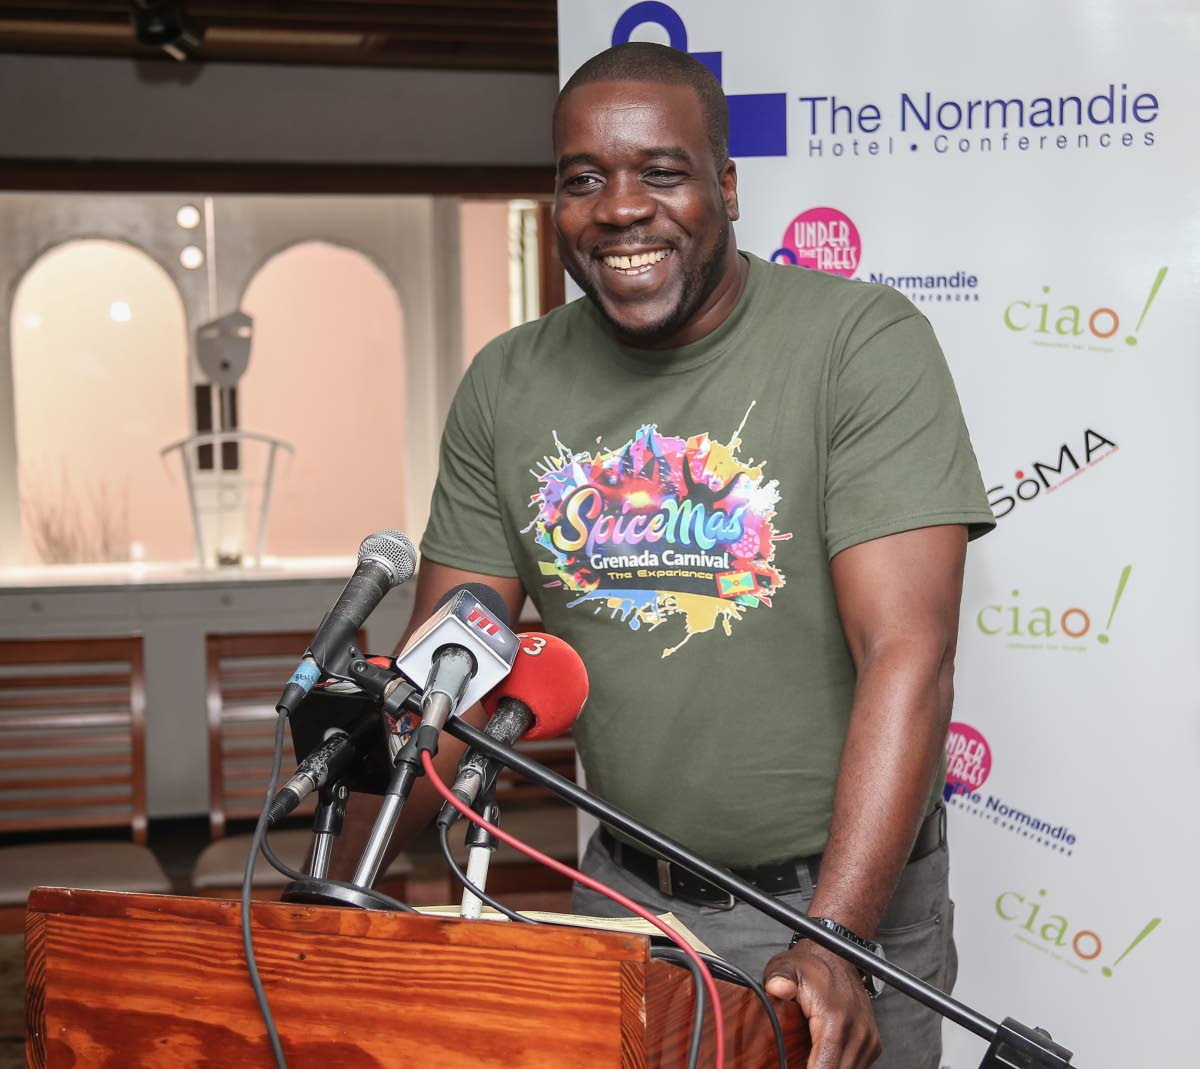 Grenada's Minister of Youth, Sports, Culture and the Arts, Norland Cox addresses a media conference at The Normandie, St Ann's yesterday. PHOTO BY JEFF MAYERS